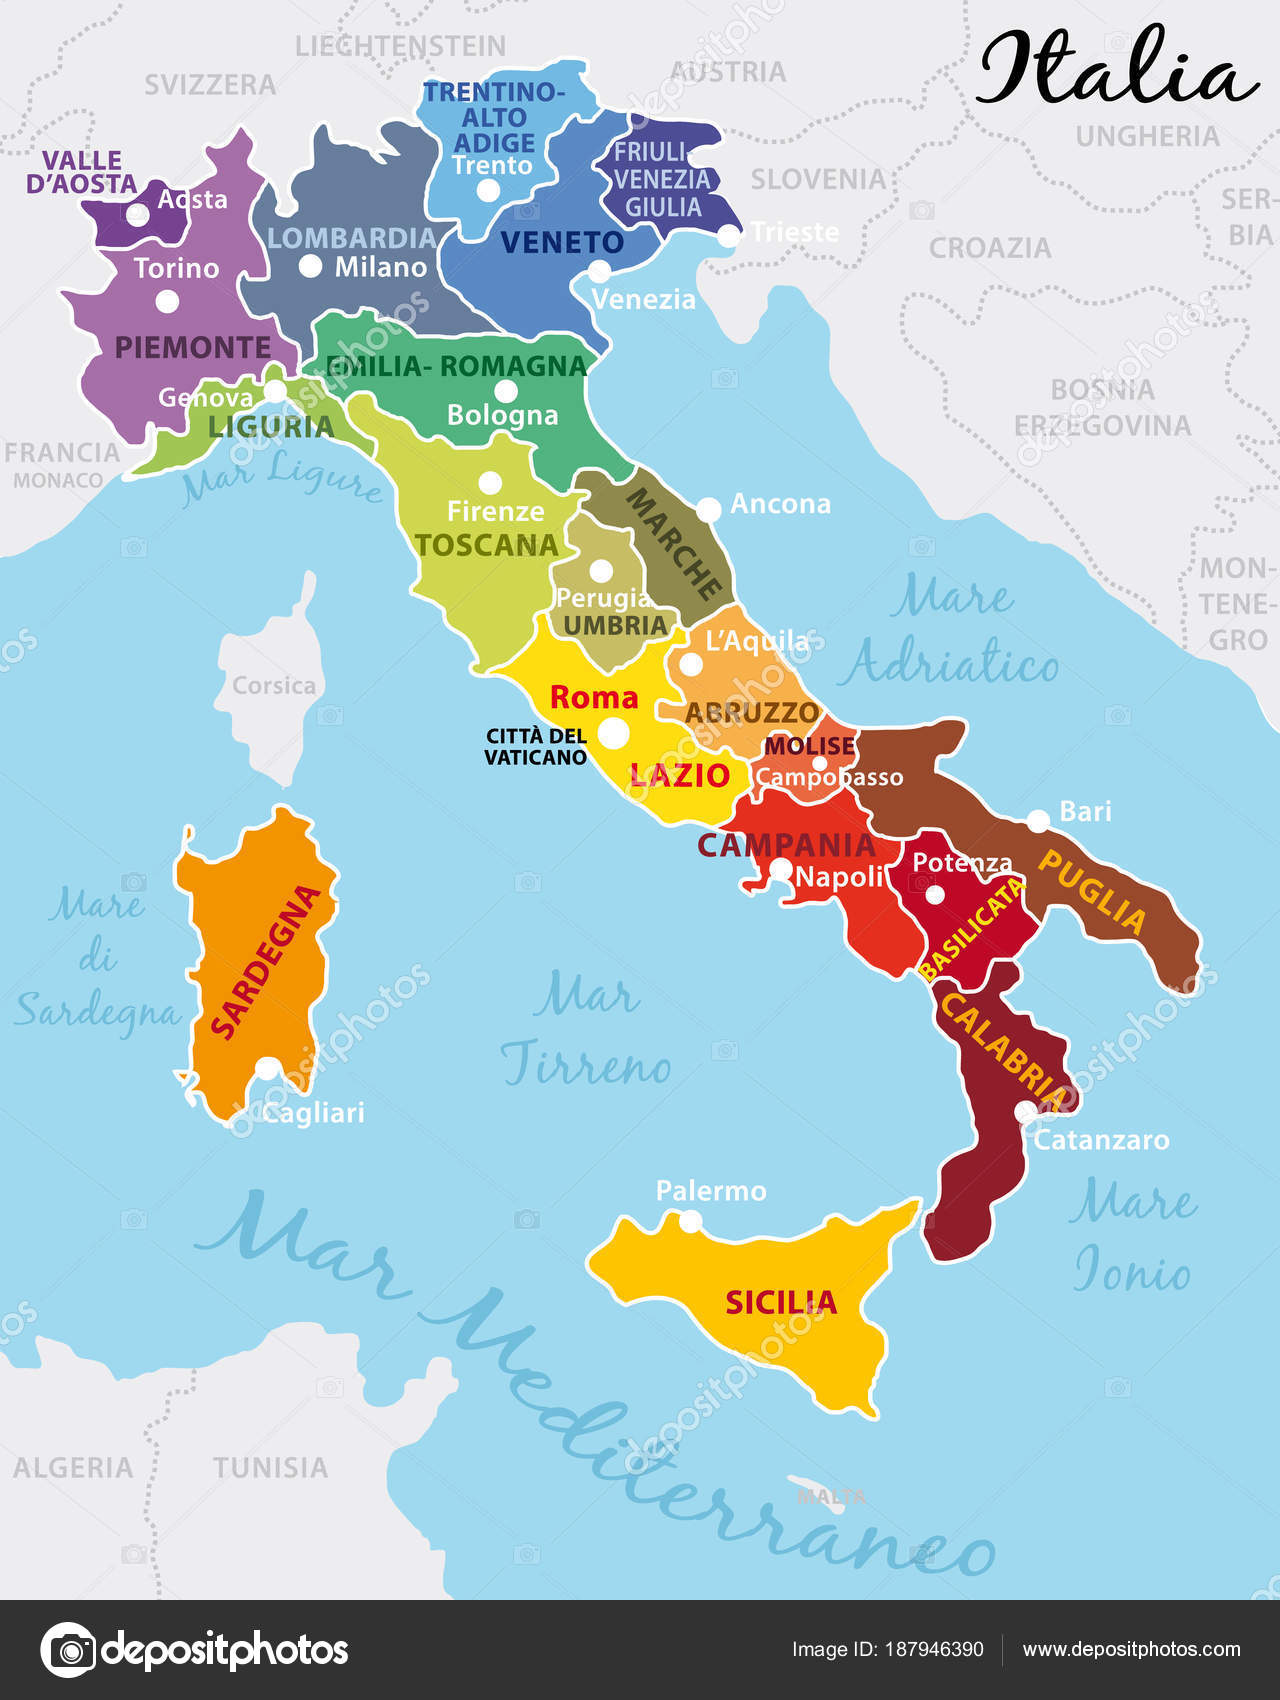 Beautiful Colorful Map Italy Italian Regions Capitals ... on map of croatia, map of turkey, map of czech republic, turin italy, florence italy, map of amalfi coast, map of roman empire, map of slovenia, palermo italy, rome italy, map of venice, map of pompeii, map of southern europe, map of tunisia, bari italy, milan italy, italy flag, map of hungary, map of tuscany, modena italy, italy weather, map of malta, map of mediterranean, map of norway, map of cyprus, bologna italy, genova italy, venice italy, map of yemen, verona italy, italy travel, map of sweden, lake como italy, map of united states, naples italy, italy tourism, pisa italy,